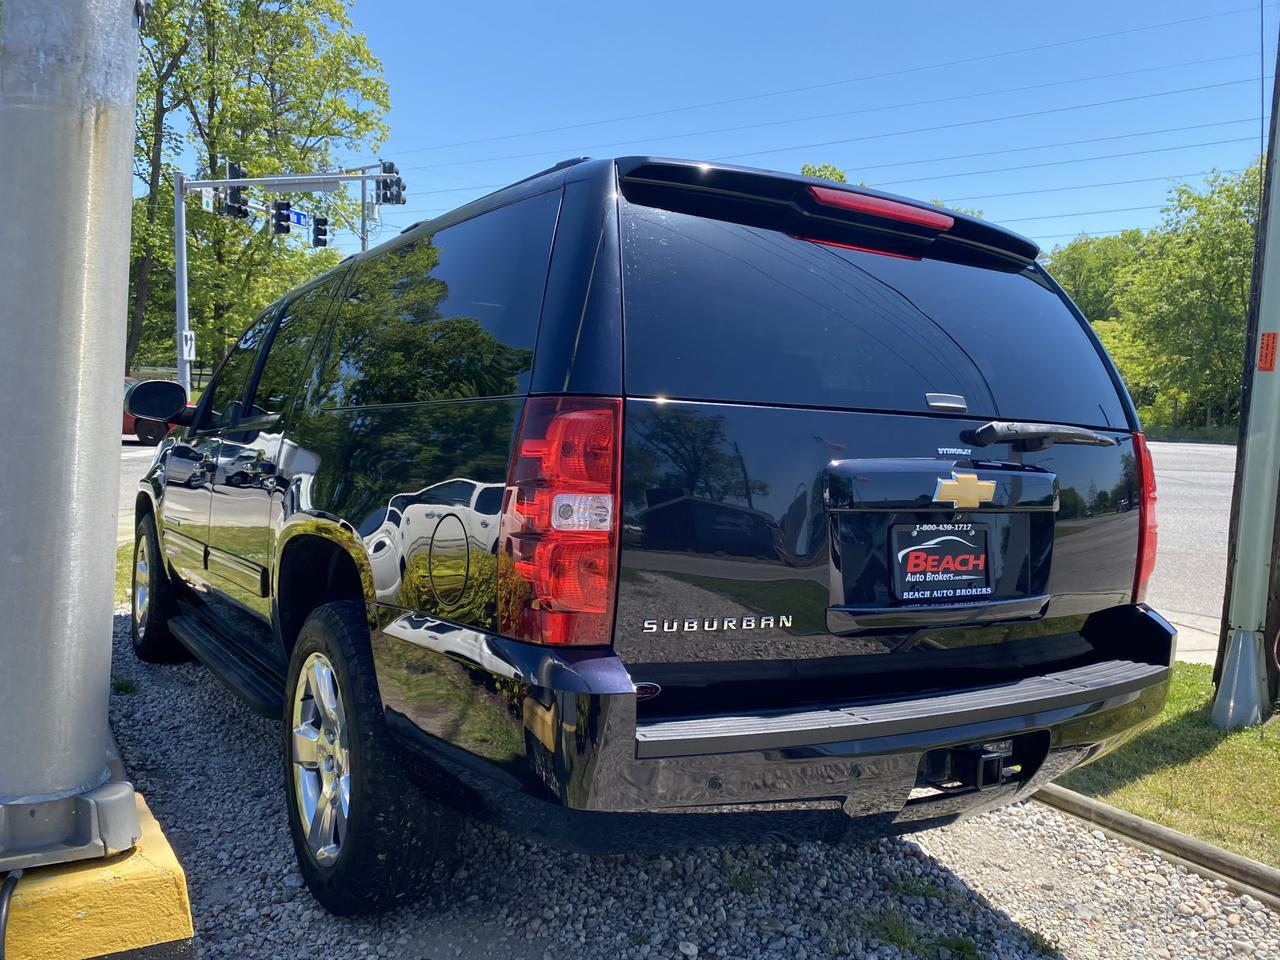 2014 CHEVROLET SUBURBAN LT, WARRANTY, LEATHER, BACKUP CAM, PARKING SENSORS, HEATED SEATS, 3RD ROW, AUX/USB PORT! Norfolk VA